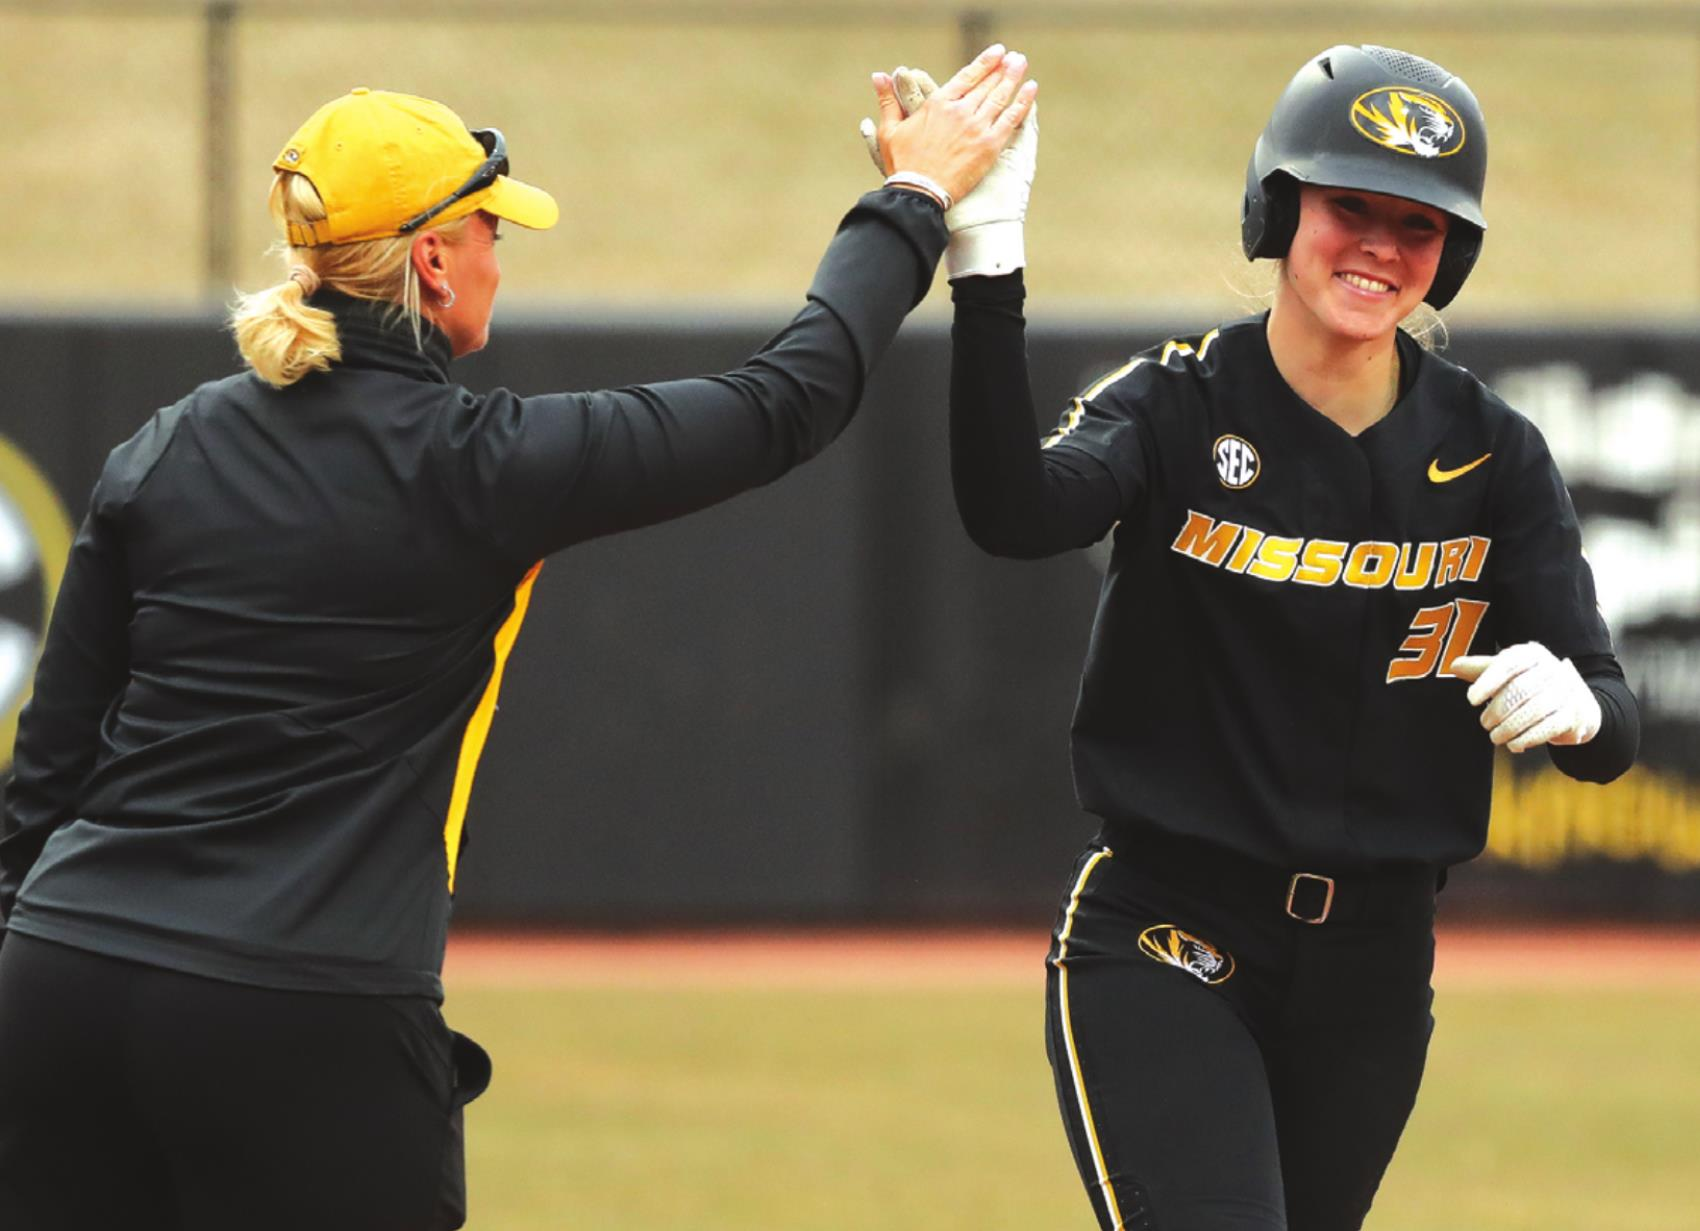 Former La Grange standout Hatti Moore, right, gets a high five from her coach as she trots around third base after a home run. Photos courtesy of University of Missouri